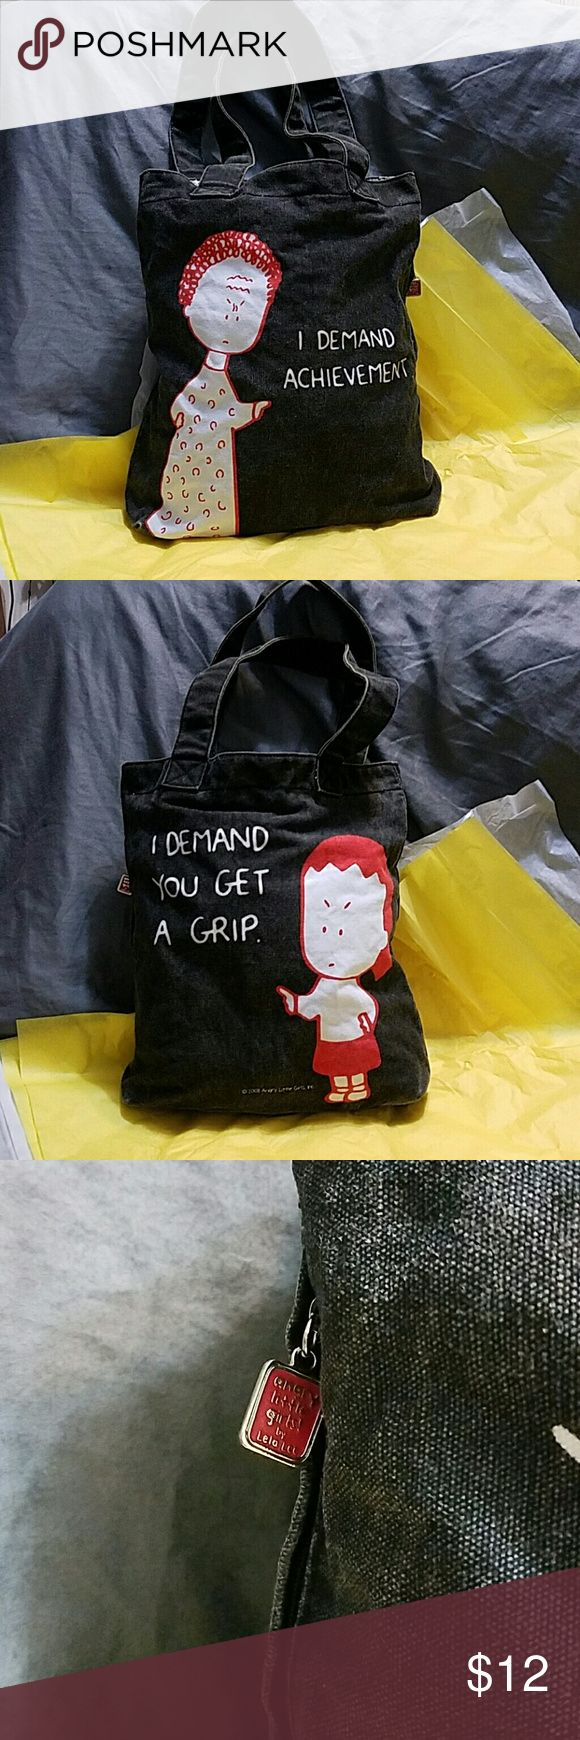 Angry Little Girls Tote Bag Super cute Angry Little Girls Tote bag, inside zipper pocket, 2 little pouches inside, 1 hidden zippered pocket on the side. 1 spot with a slight stain inside (pic) Gently used. 13 inches tall, 12 inches wide. Bags Totes